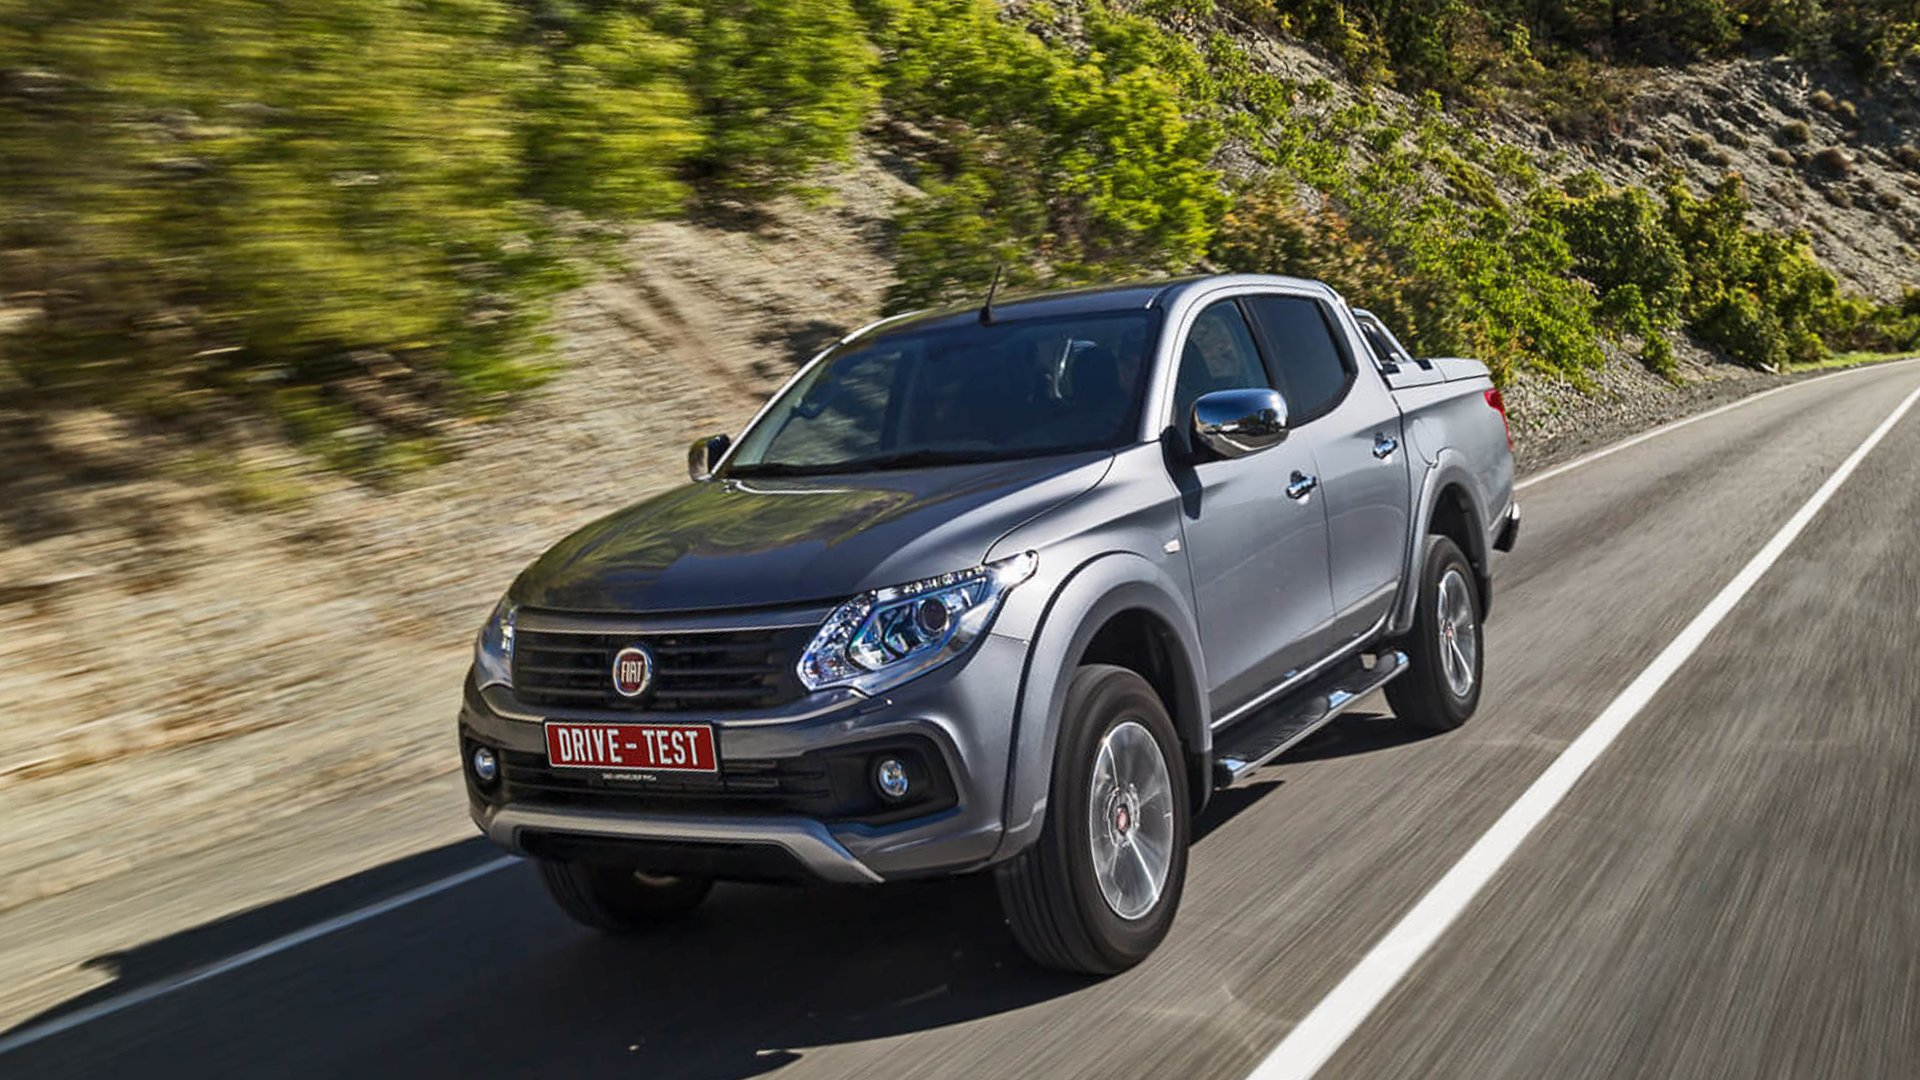 New 2019 Fiat Fullback Test Drive On Road